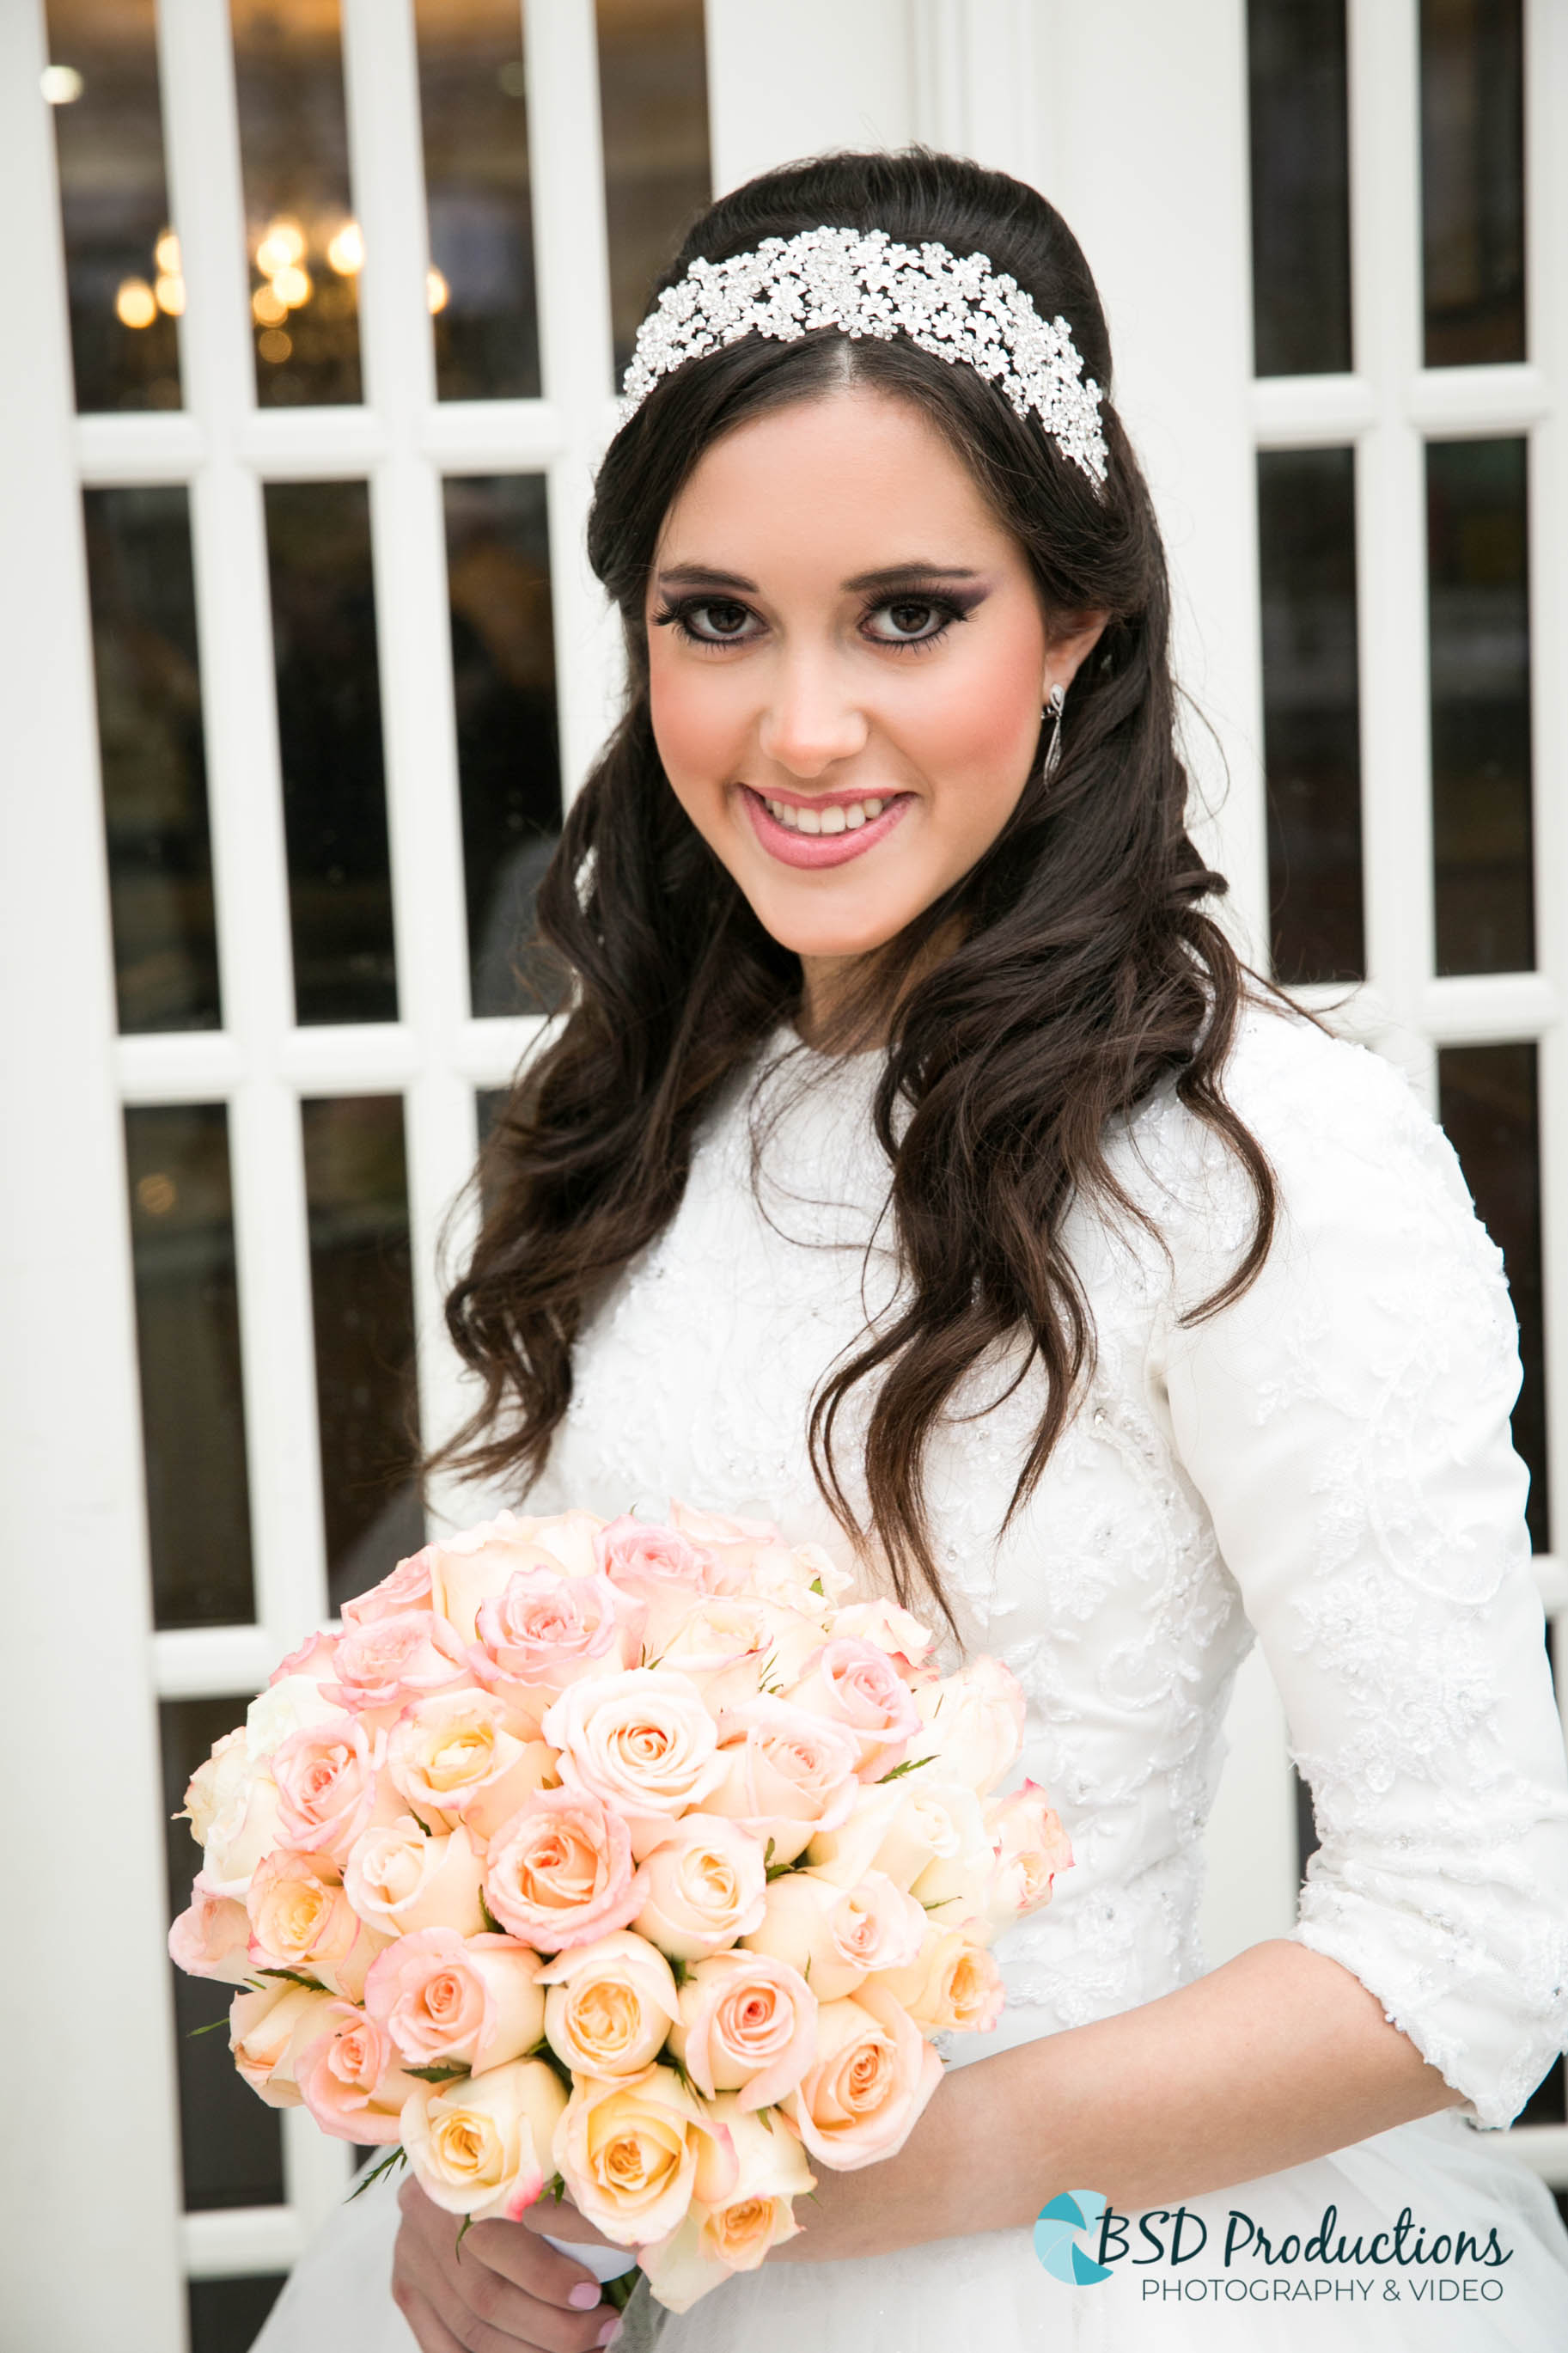 UH5A0206 Wedding – BSD Productions Photography